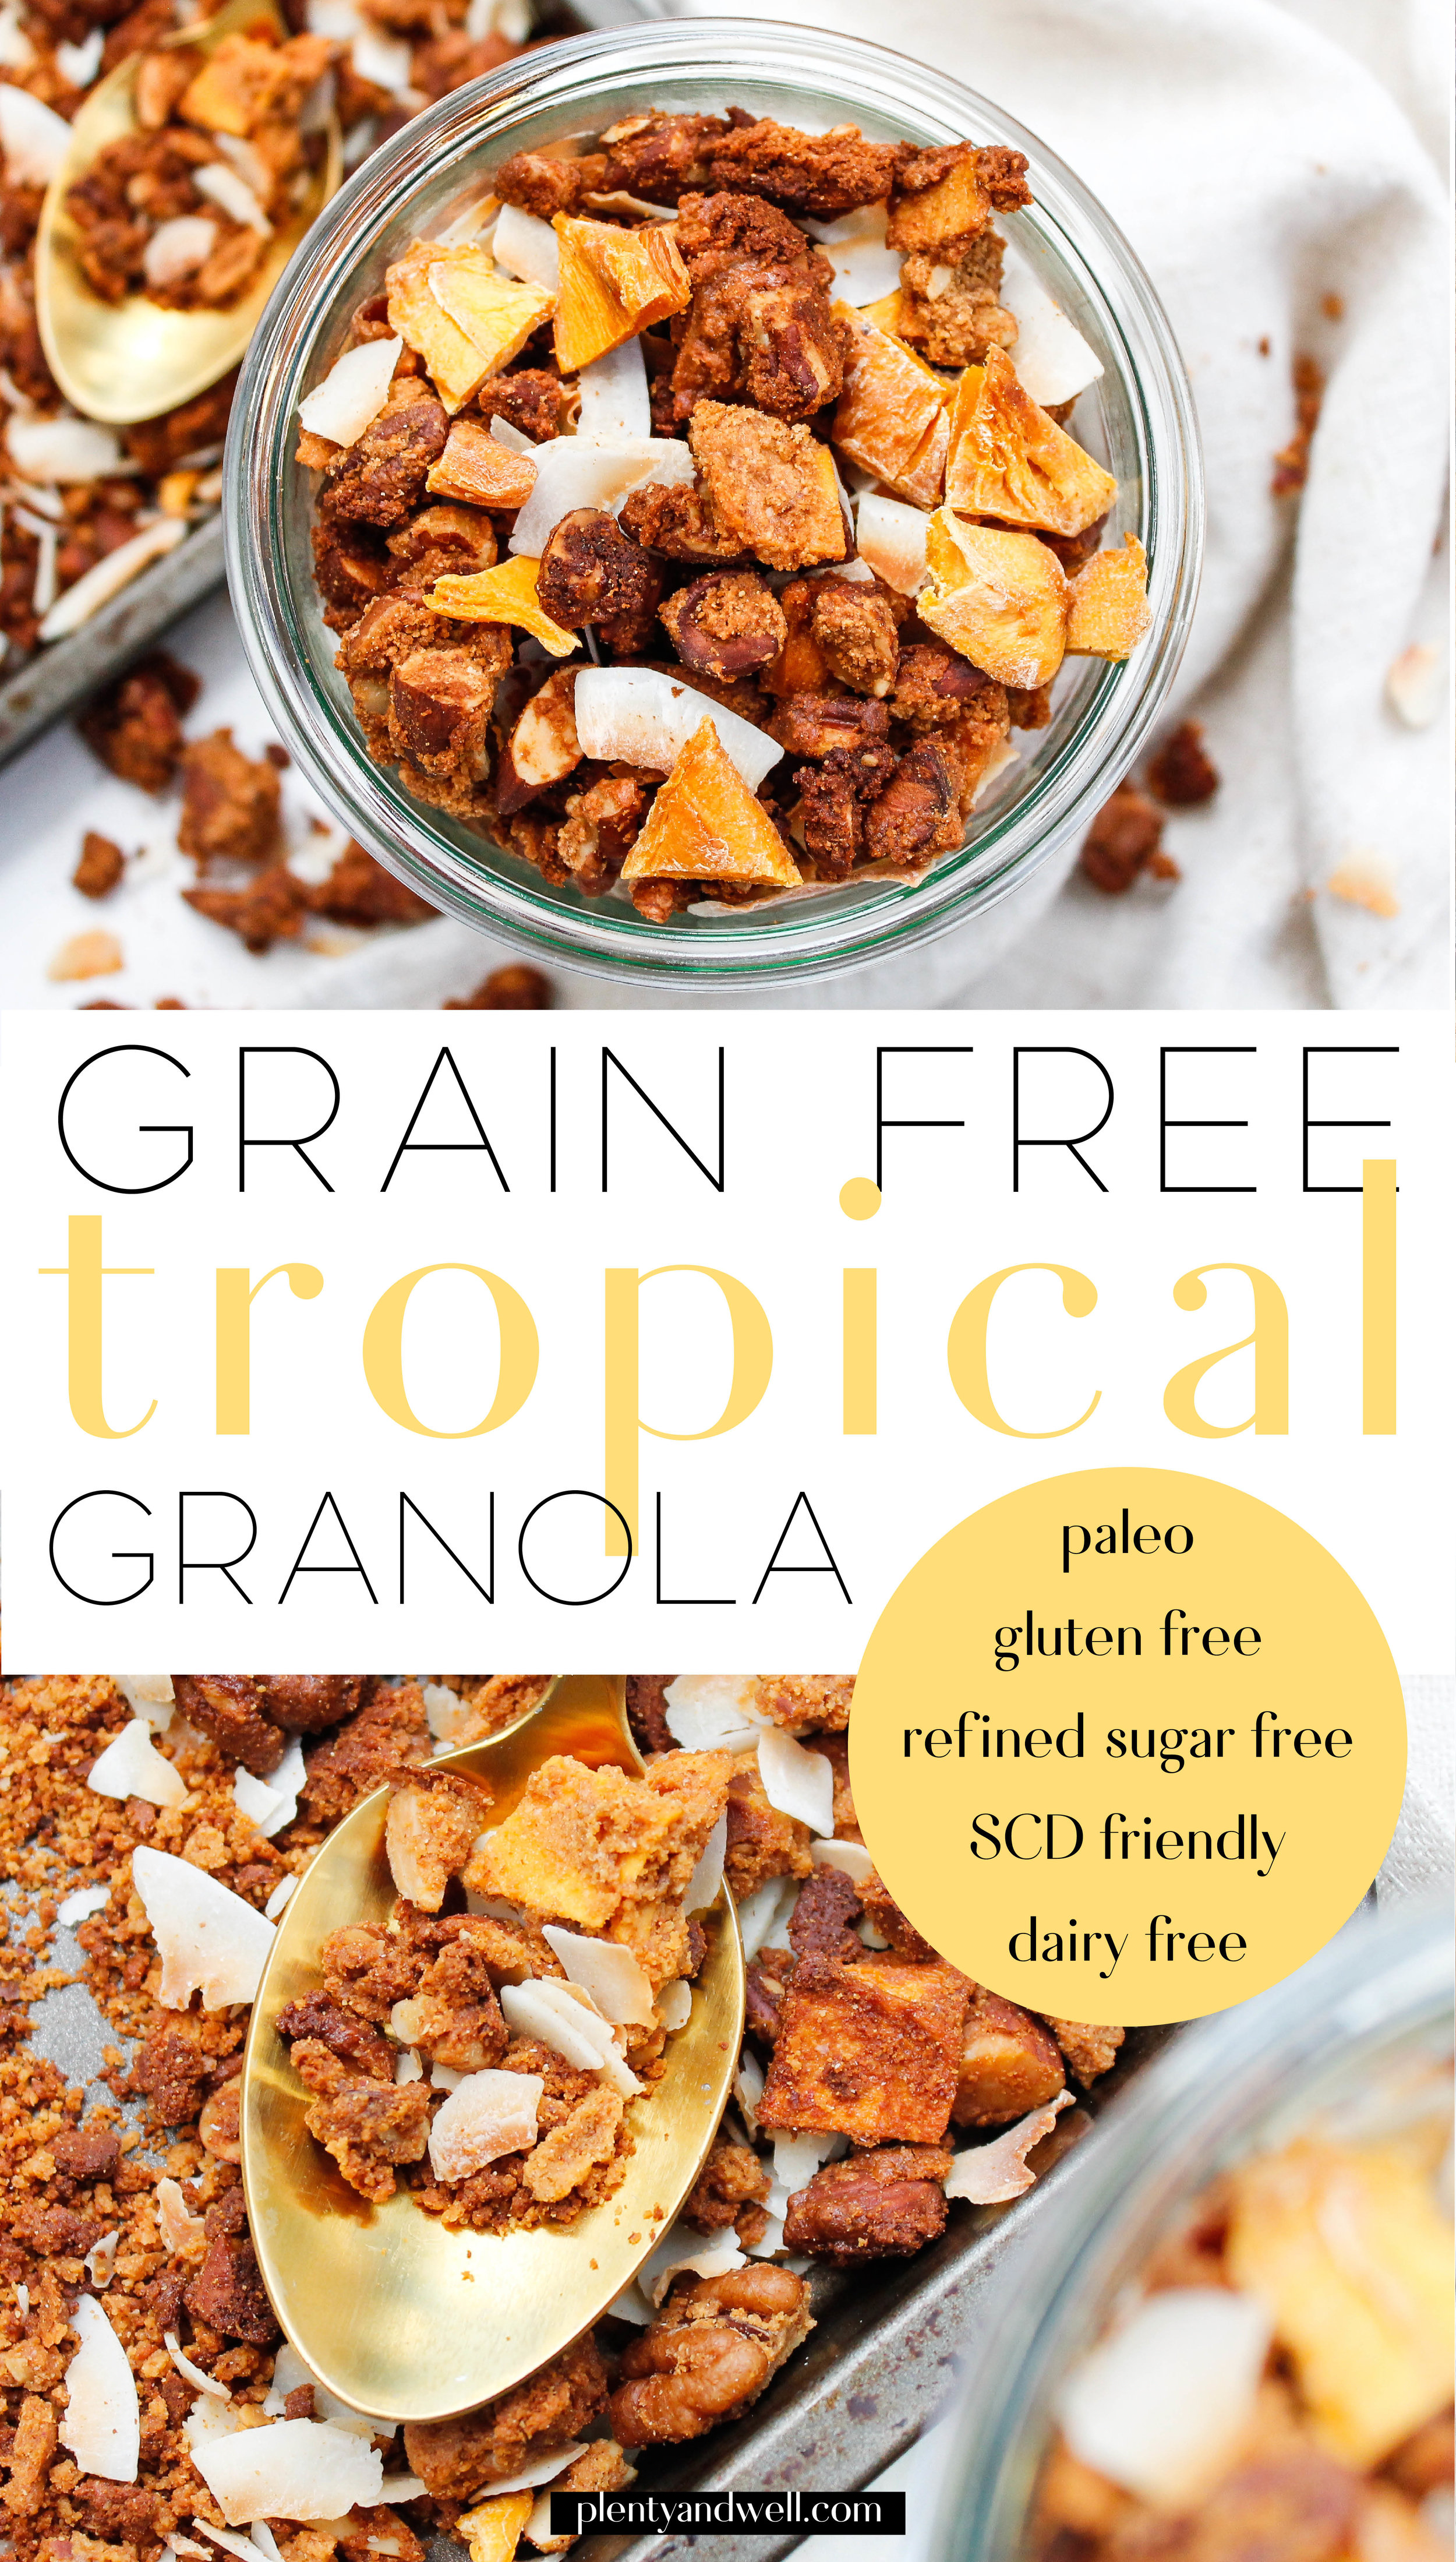 Paleo Tropical Granola || This grain free granola is the perfect smoothie topper, healthy snack or healthy sweet treat! It's also gluten free, dairy free (easily made vegan), refined sugar free and Specific Carbohydrate Diet friendly! With the mix of dried mango and toasted coconut it's like each bite transports you to the beach! Click through for the full recipe. || plentyandwell.com || #paleogranola #grainfreegranola #grainfreeliving #specificcarbohydratediet